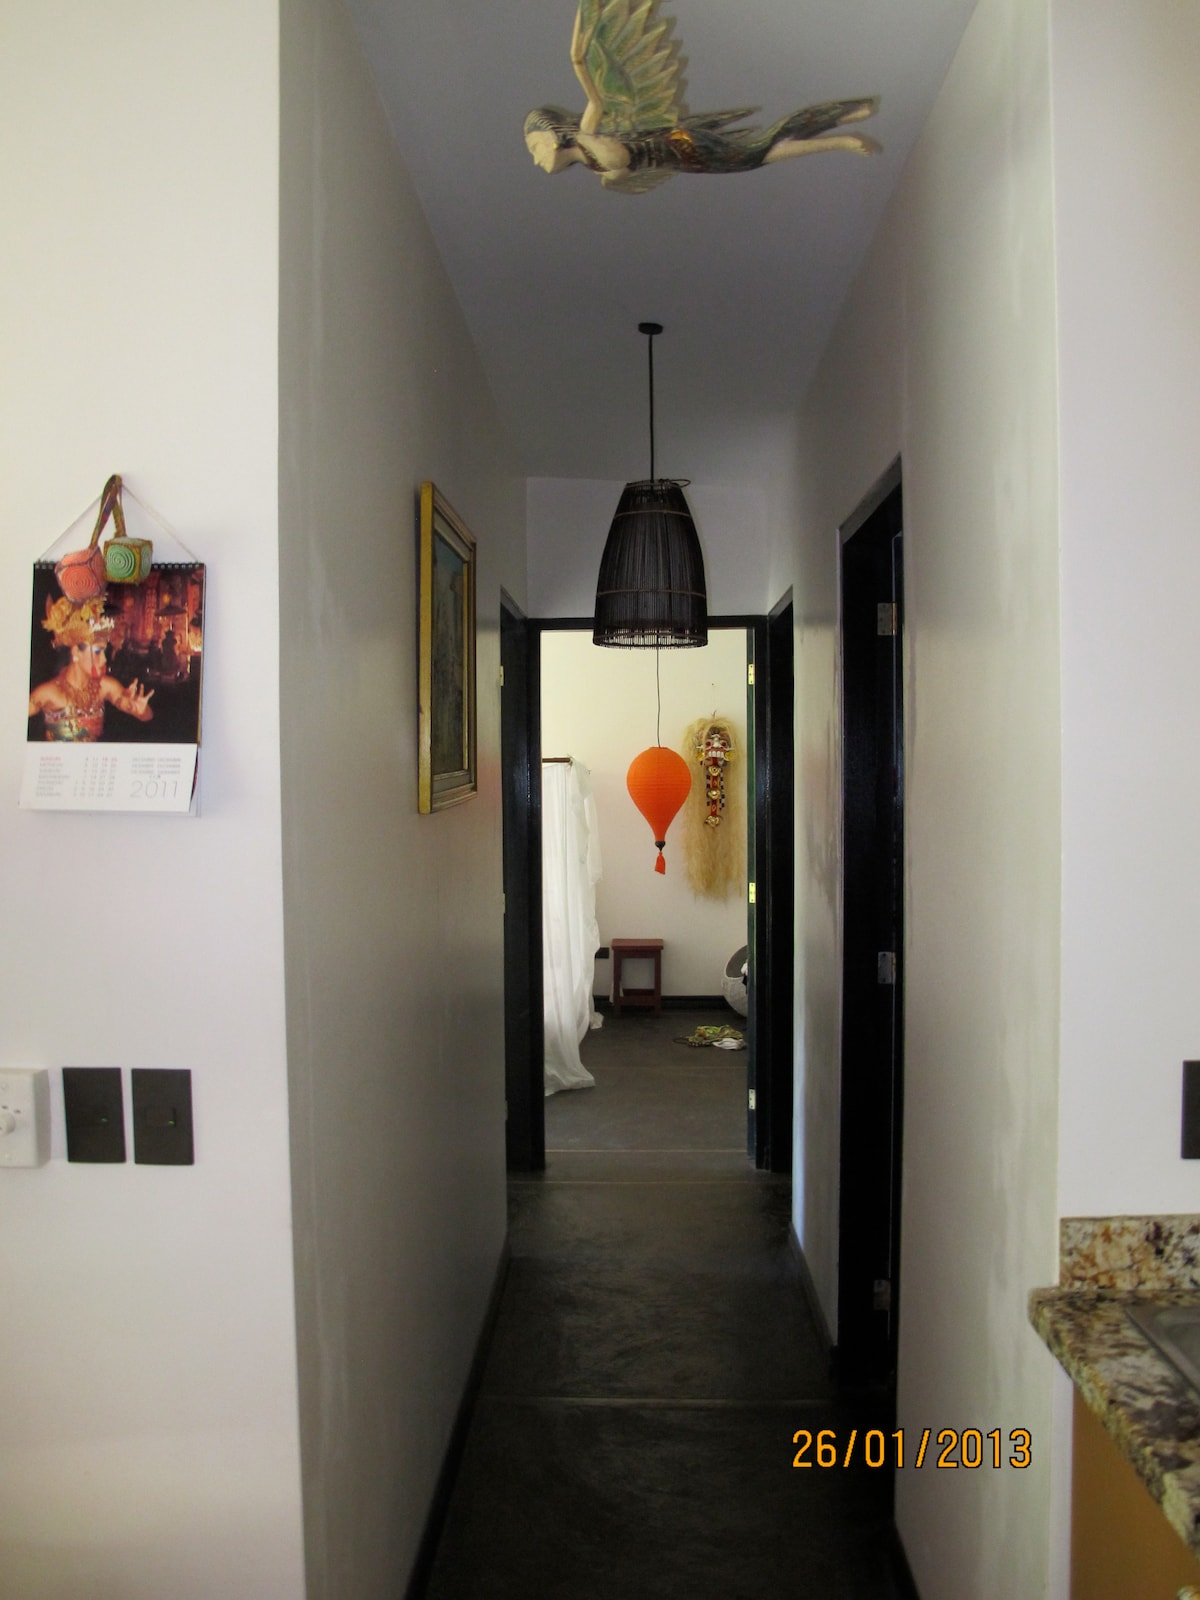 Hallway to bedrooms and bathroom